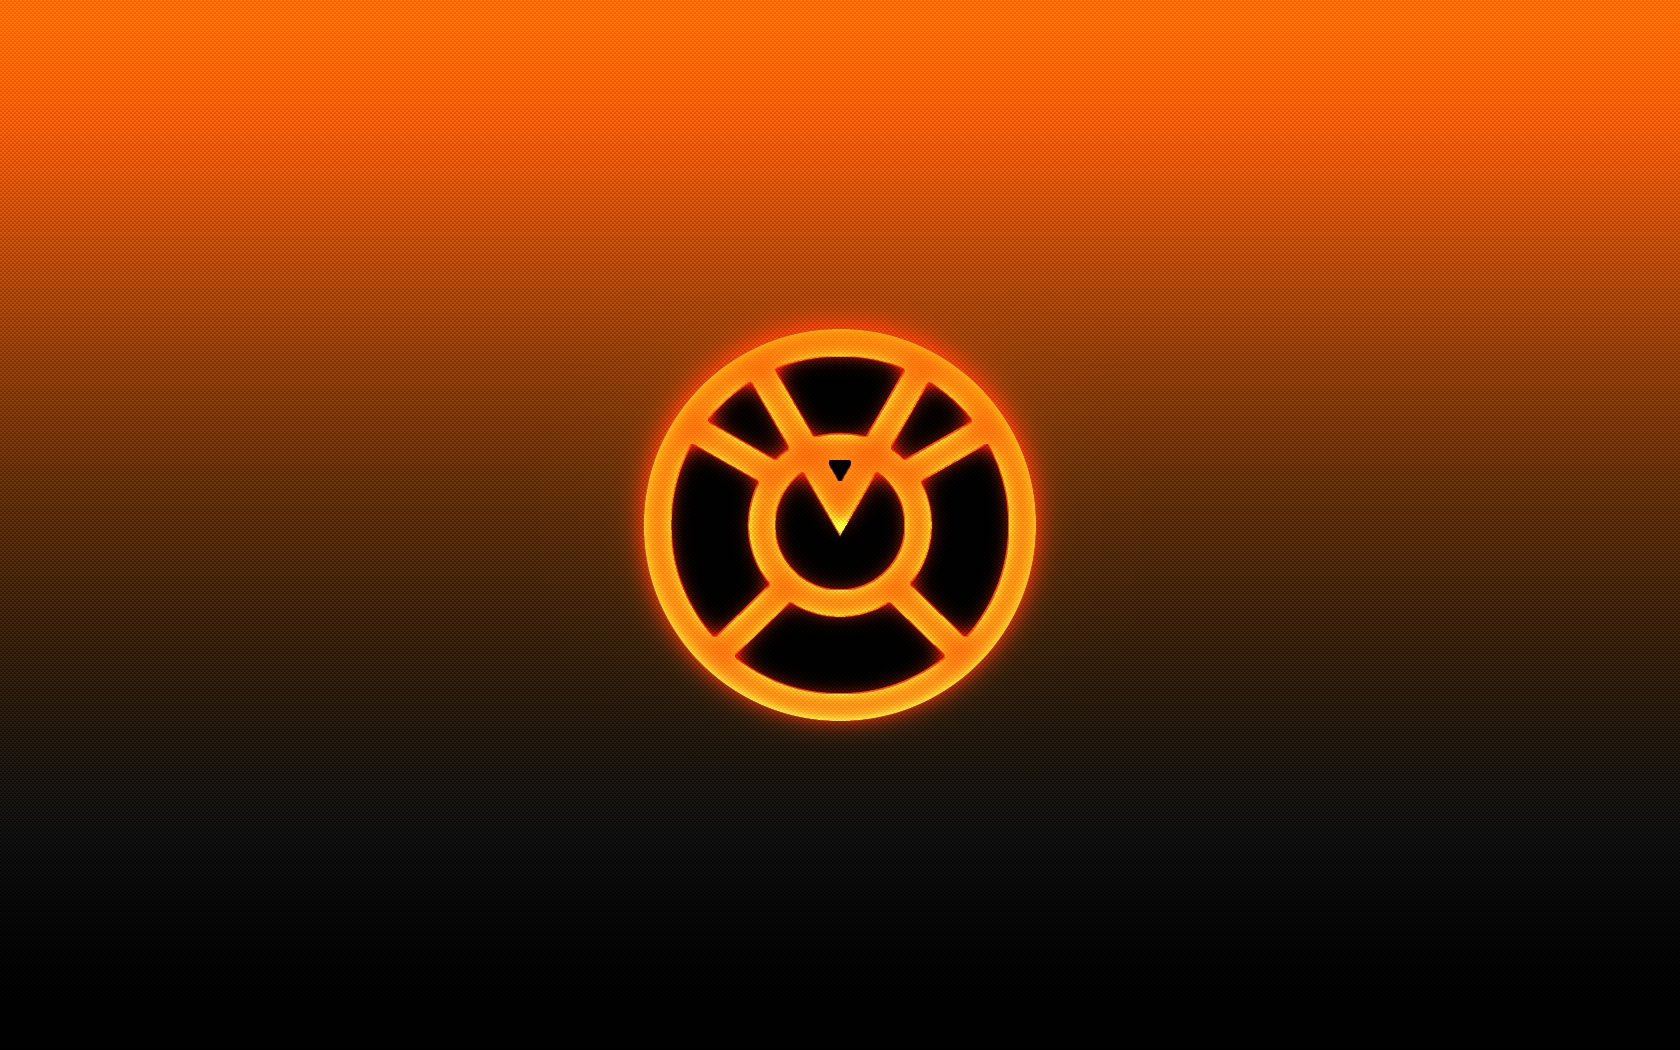 Orange lantern avarice by lordshenlong on deviantart orange lantern avarice by lordshenlong orange lantern avarice by lordshenlong biocorpaavc Gallery